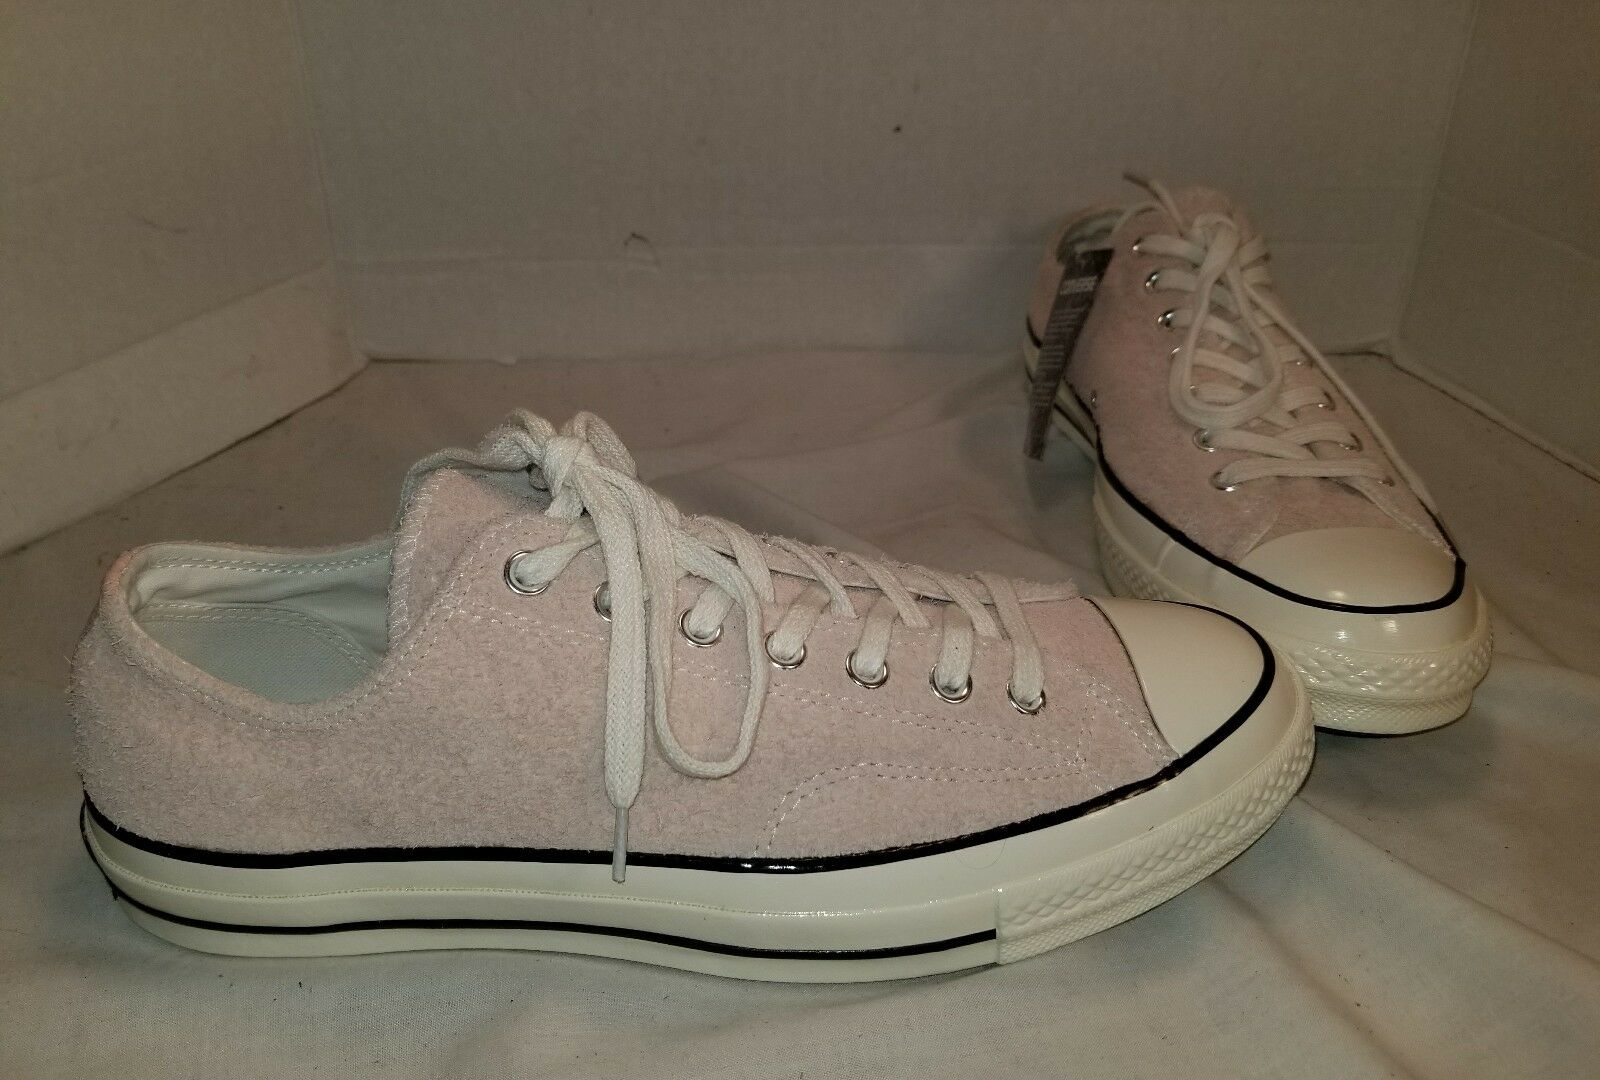 NEW CONVERSE CHUCK TAYLOR ALL STAR '70 '70 '70 DUSK PINK SUEDE LO SNEAKERS SIZE MEN 10 df2c1b